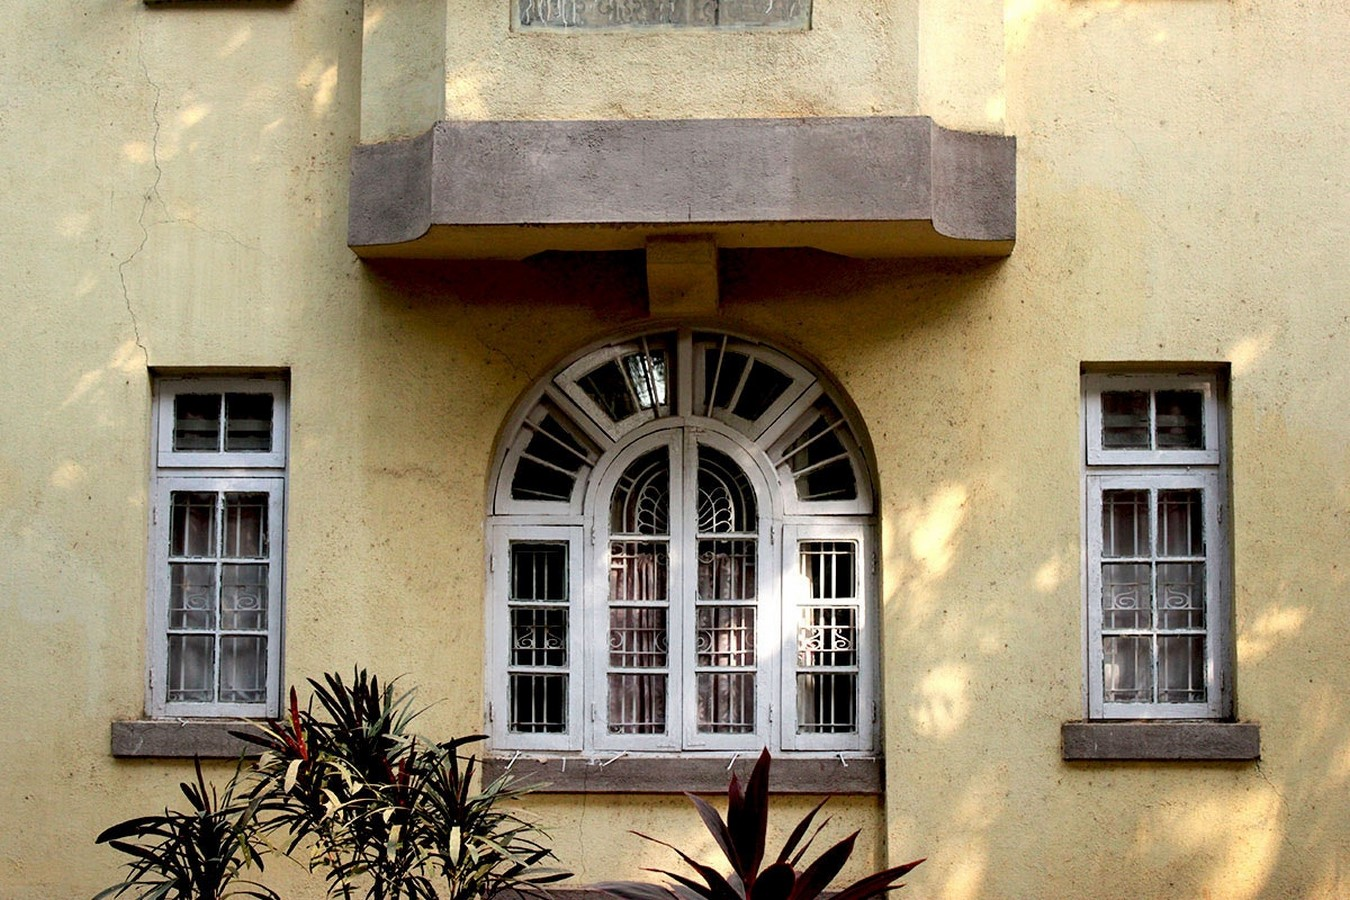 The Parsi colonies of Mumbai- understanding the contrast in social architecture of Mumbai - Sheet3